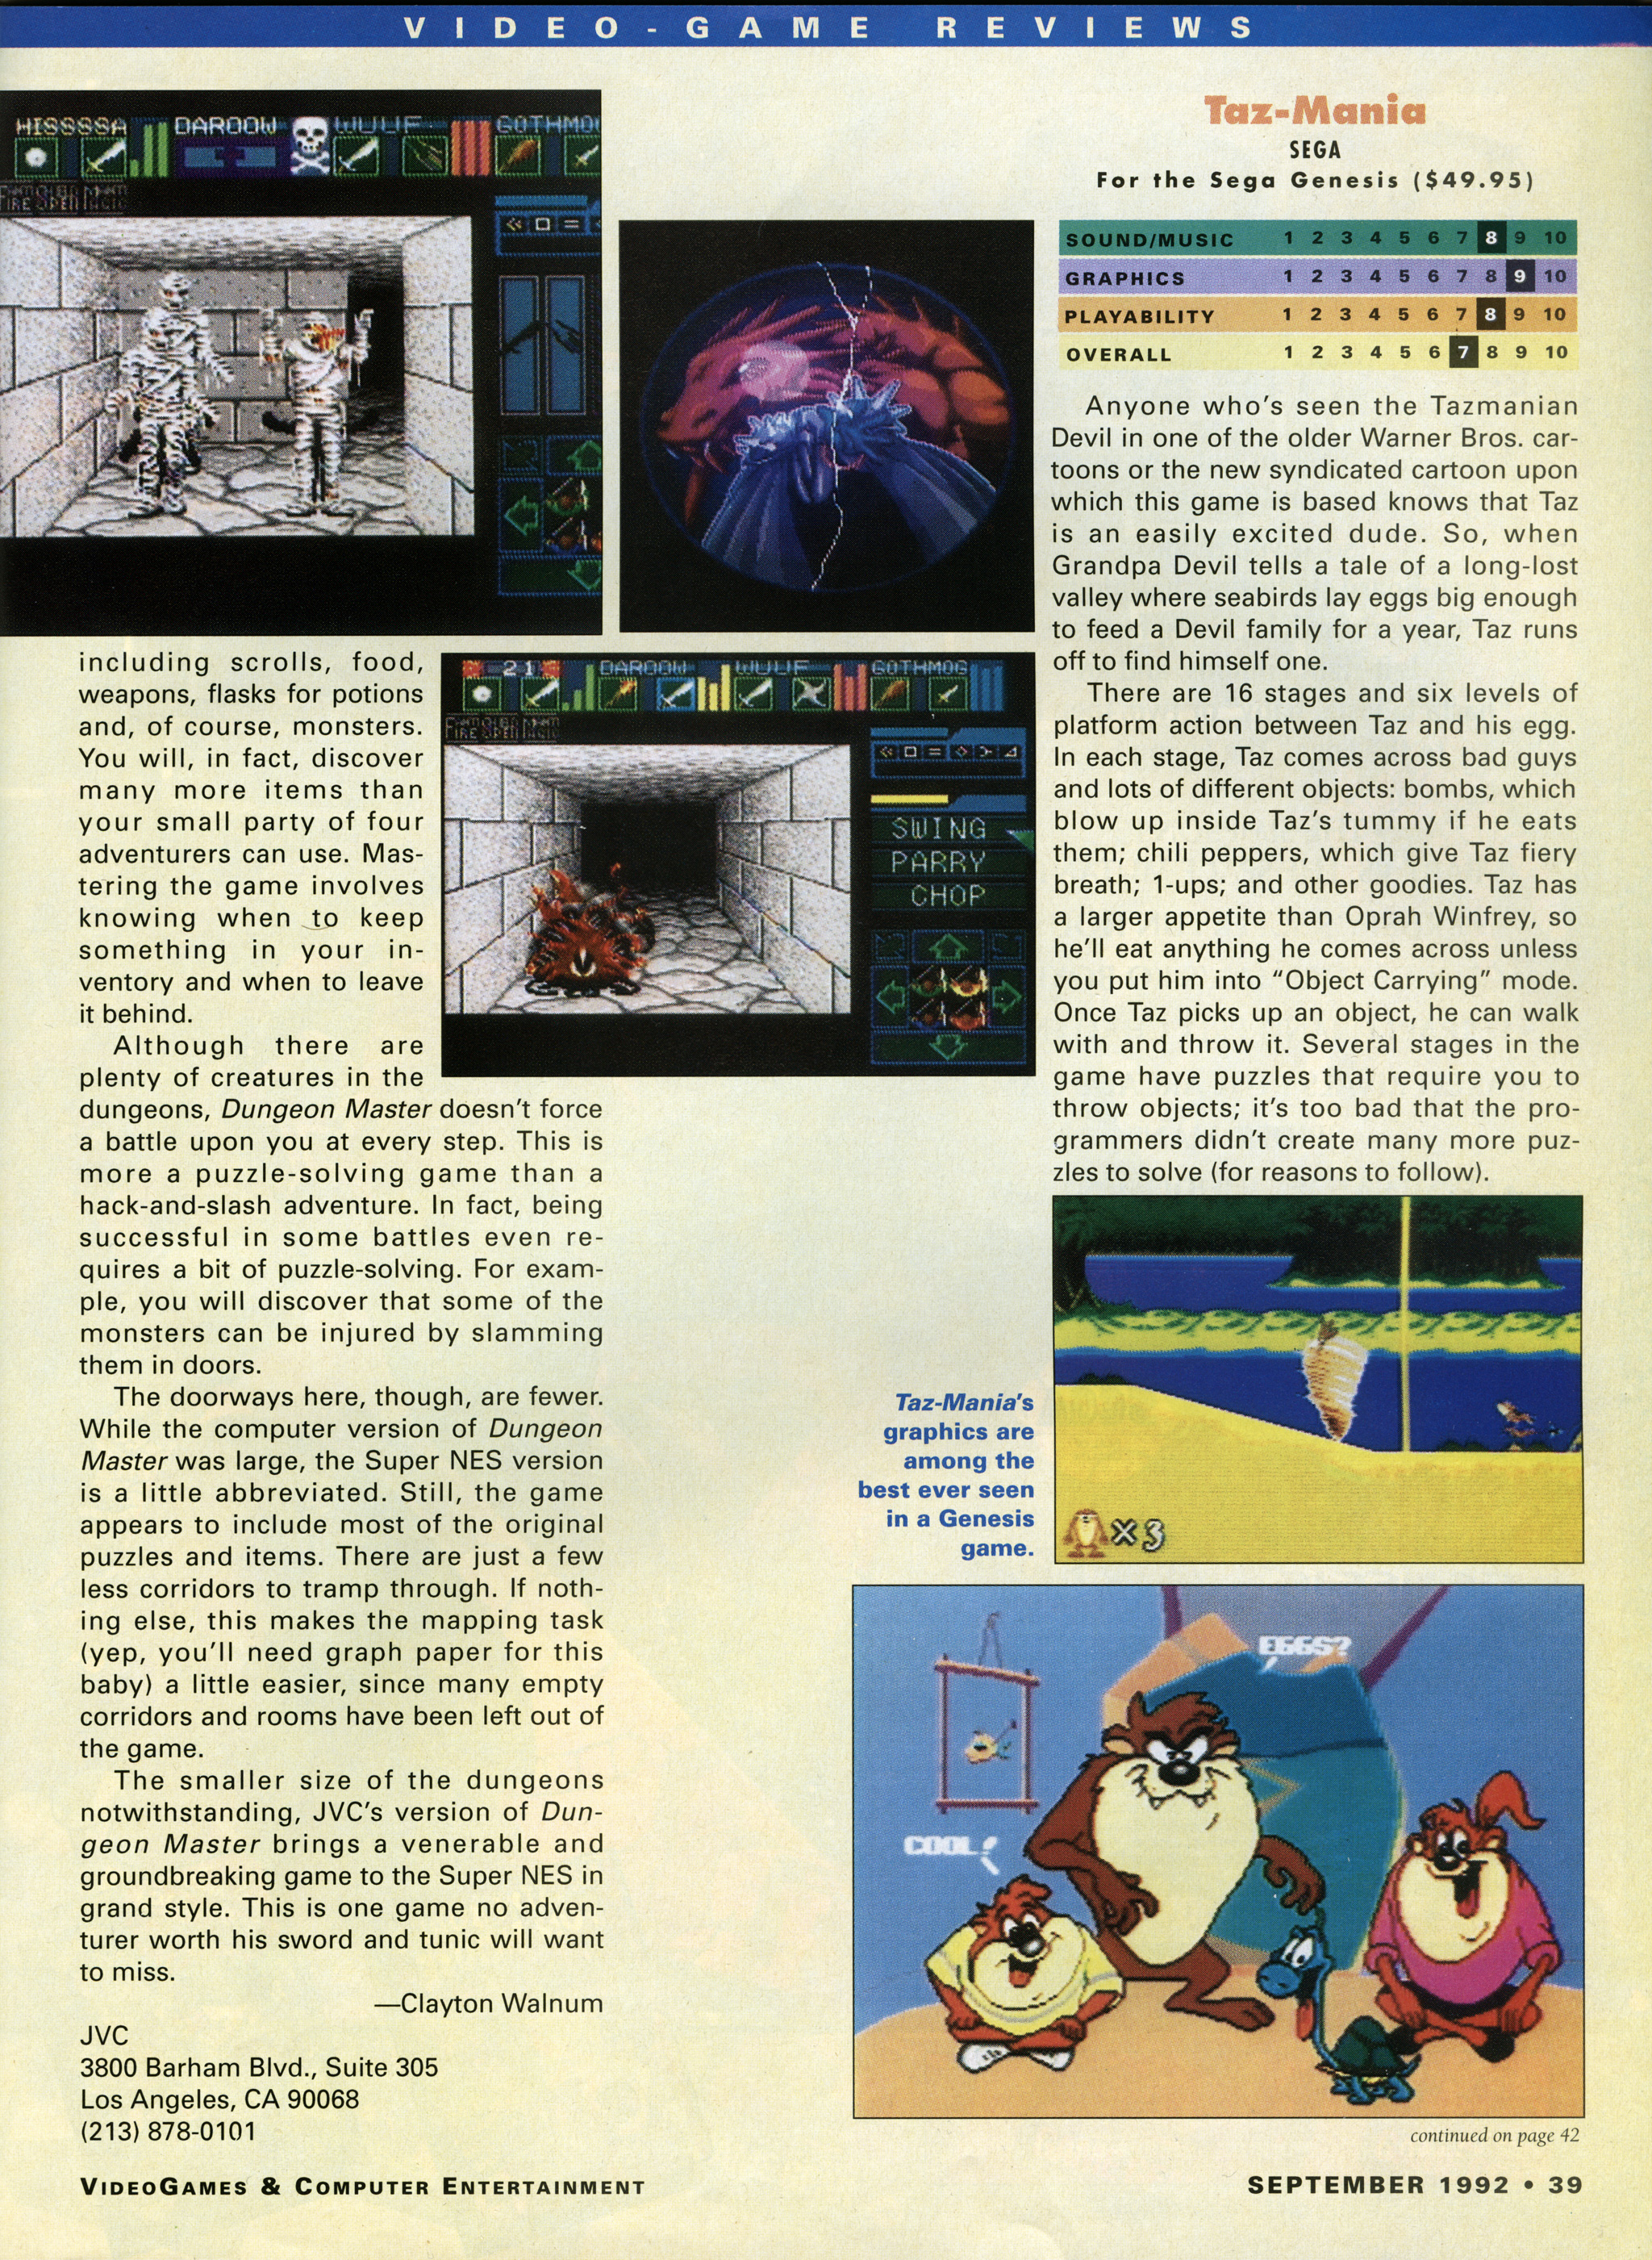 Dungeon Master for Super NES Review published in American magazine 'VideoGames And Computer Entertainment', Issue #44 September 1992, Page 39